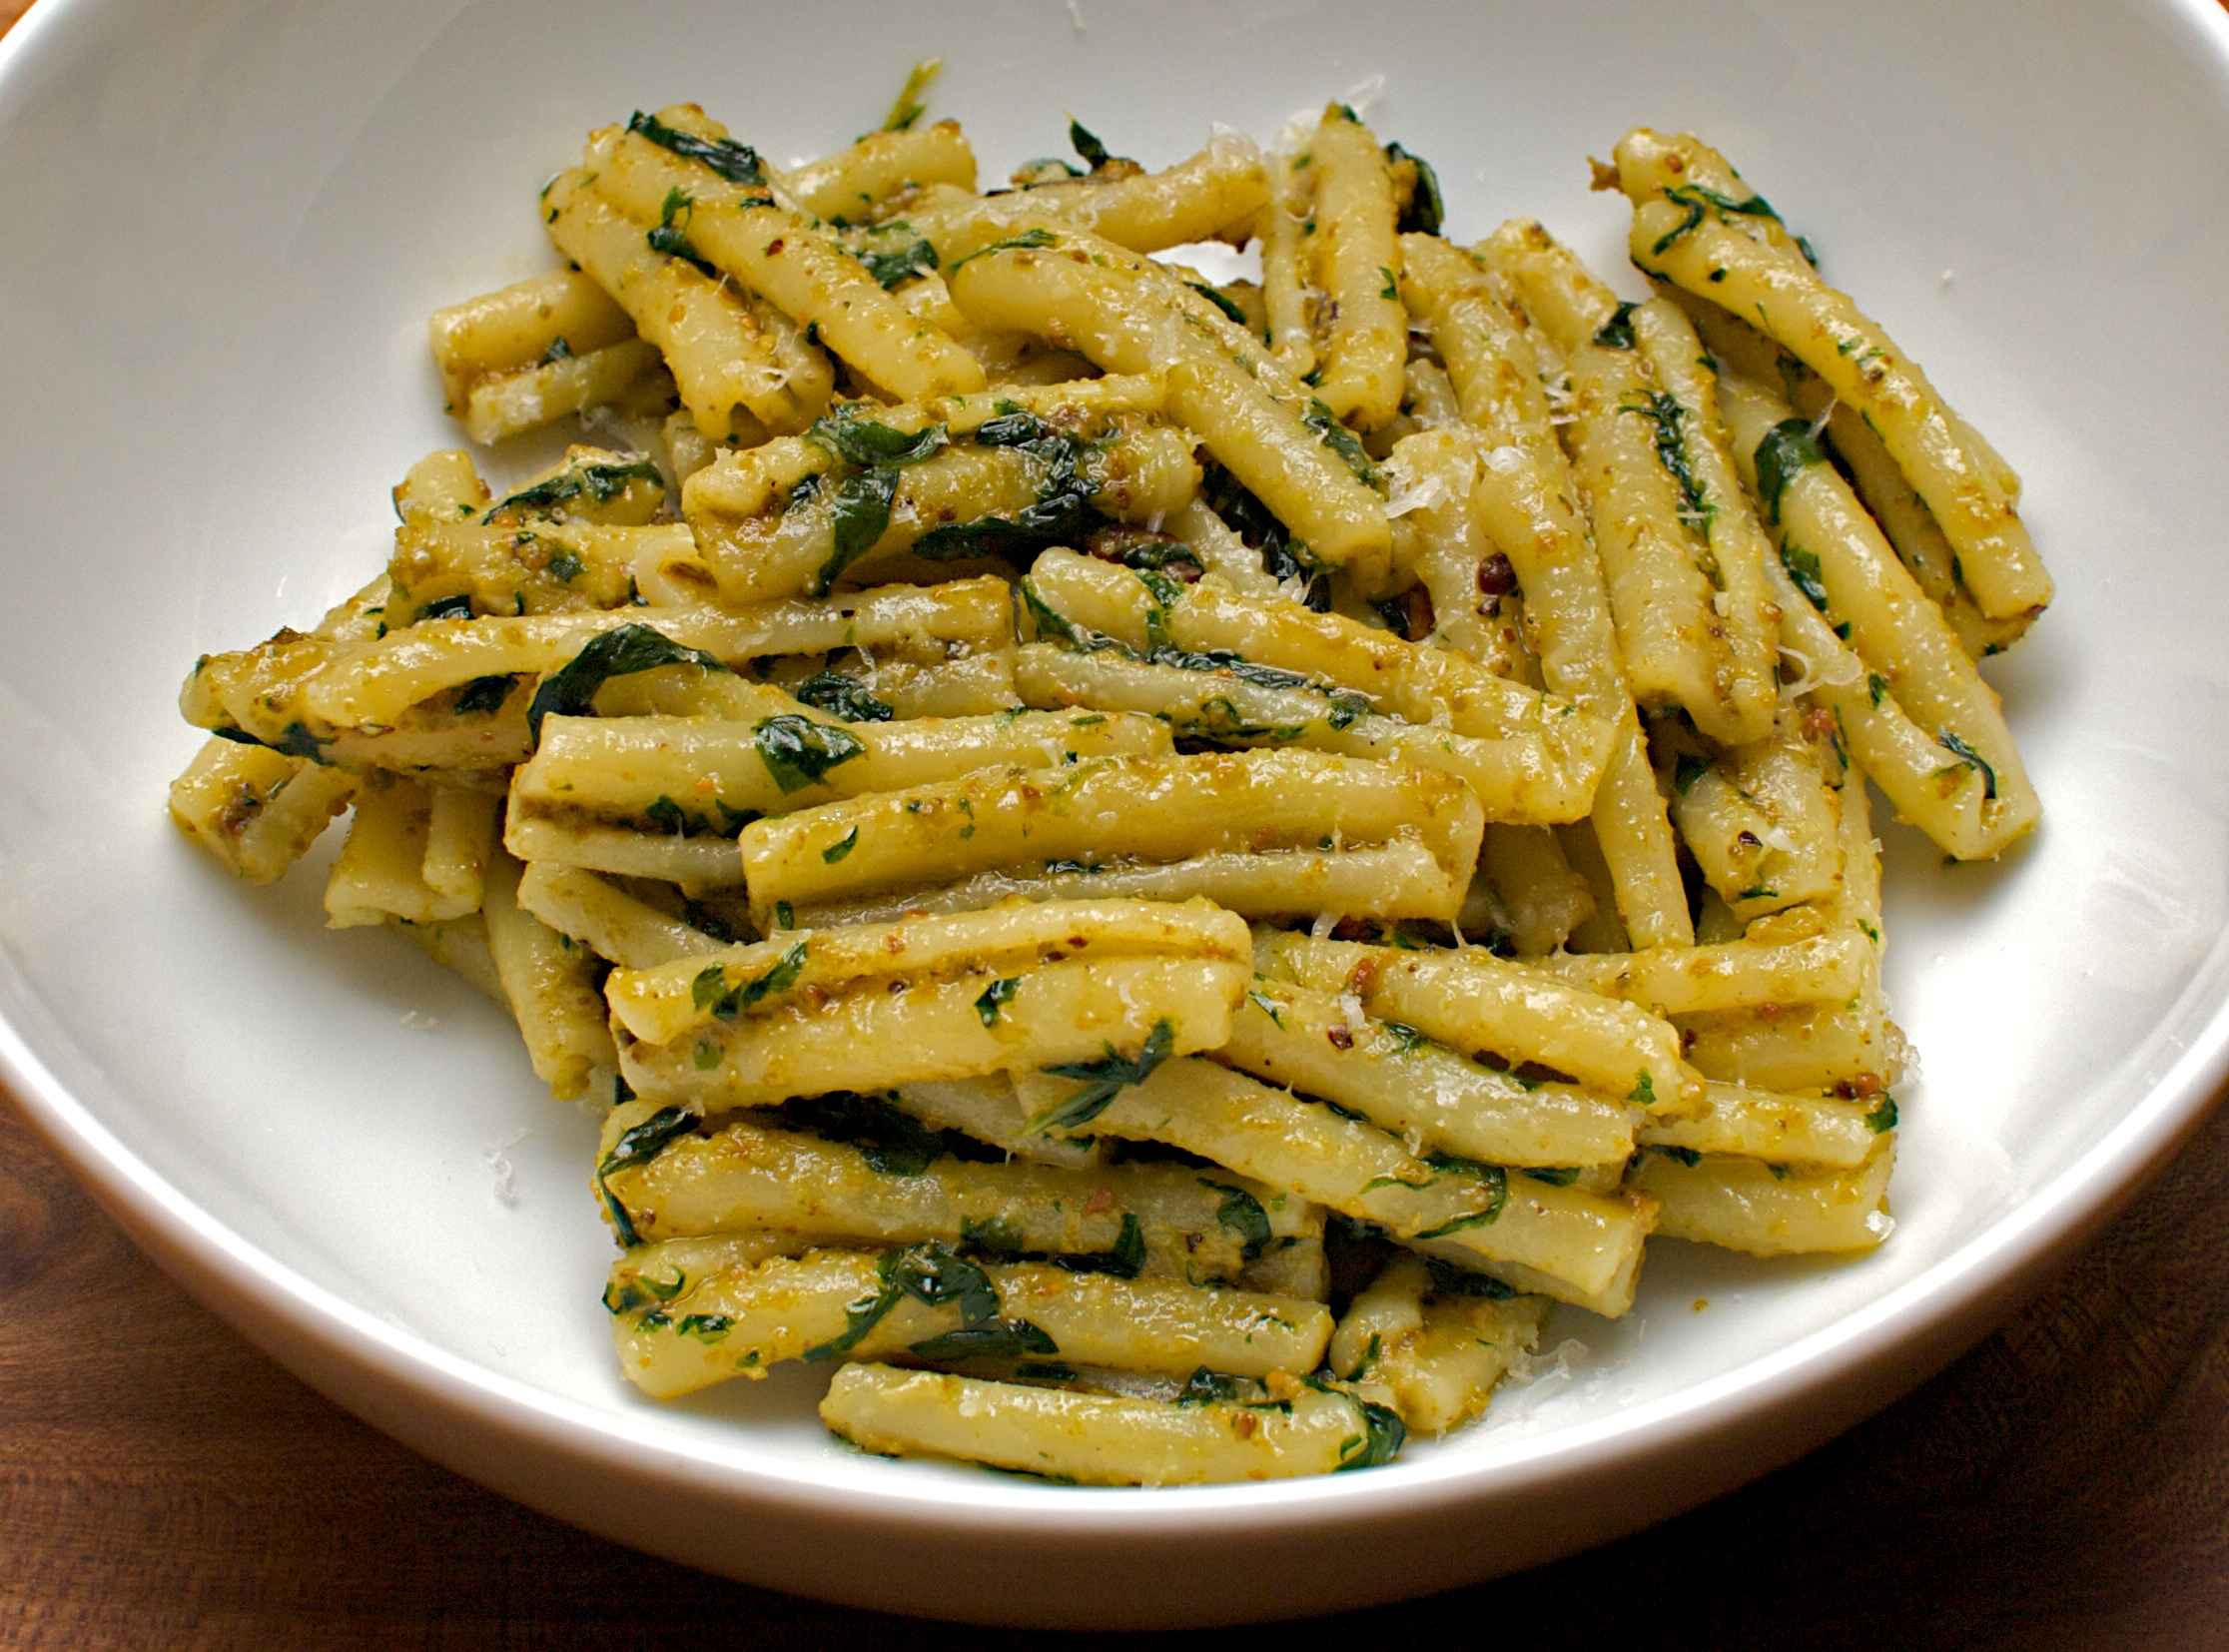 ... roasted broccoli penne with roasted broccoli and pistachio gremolata